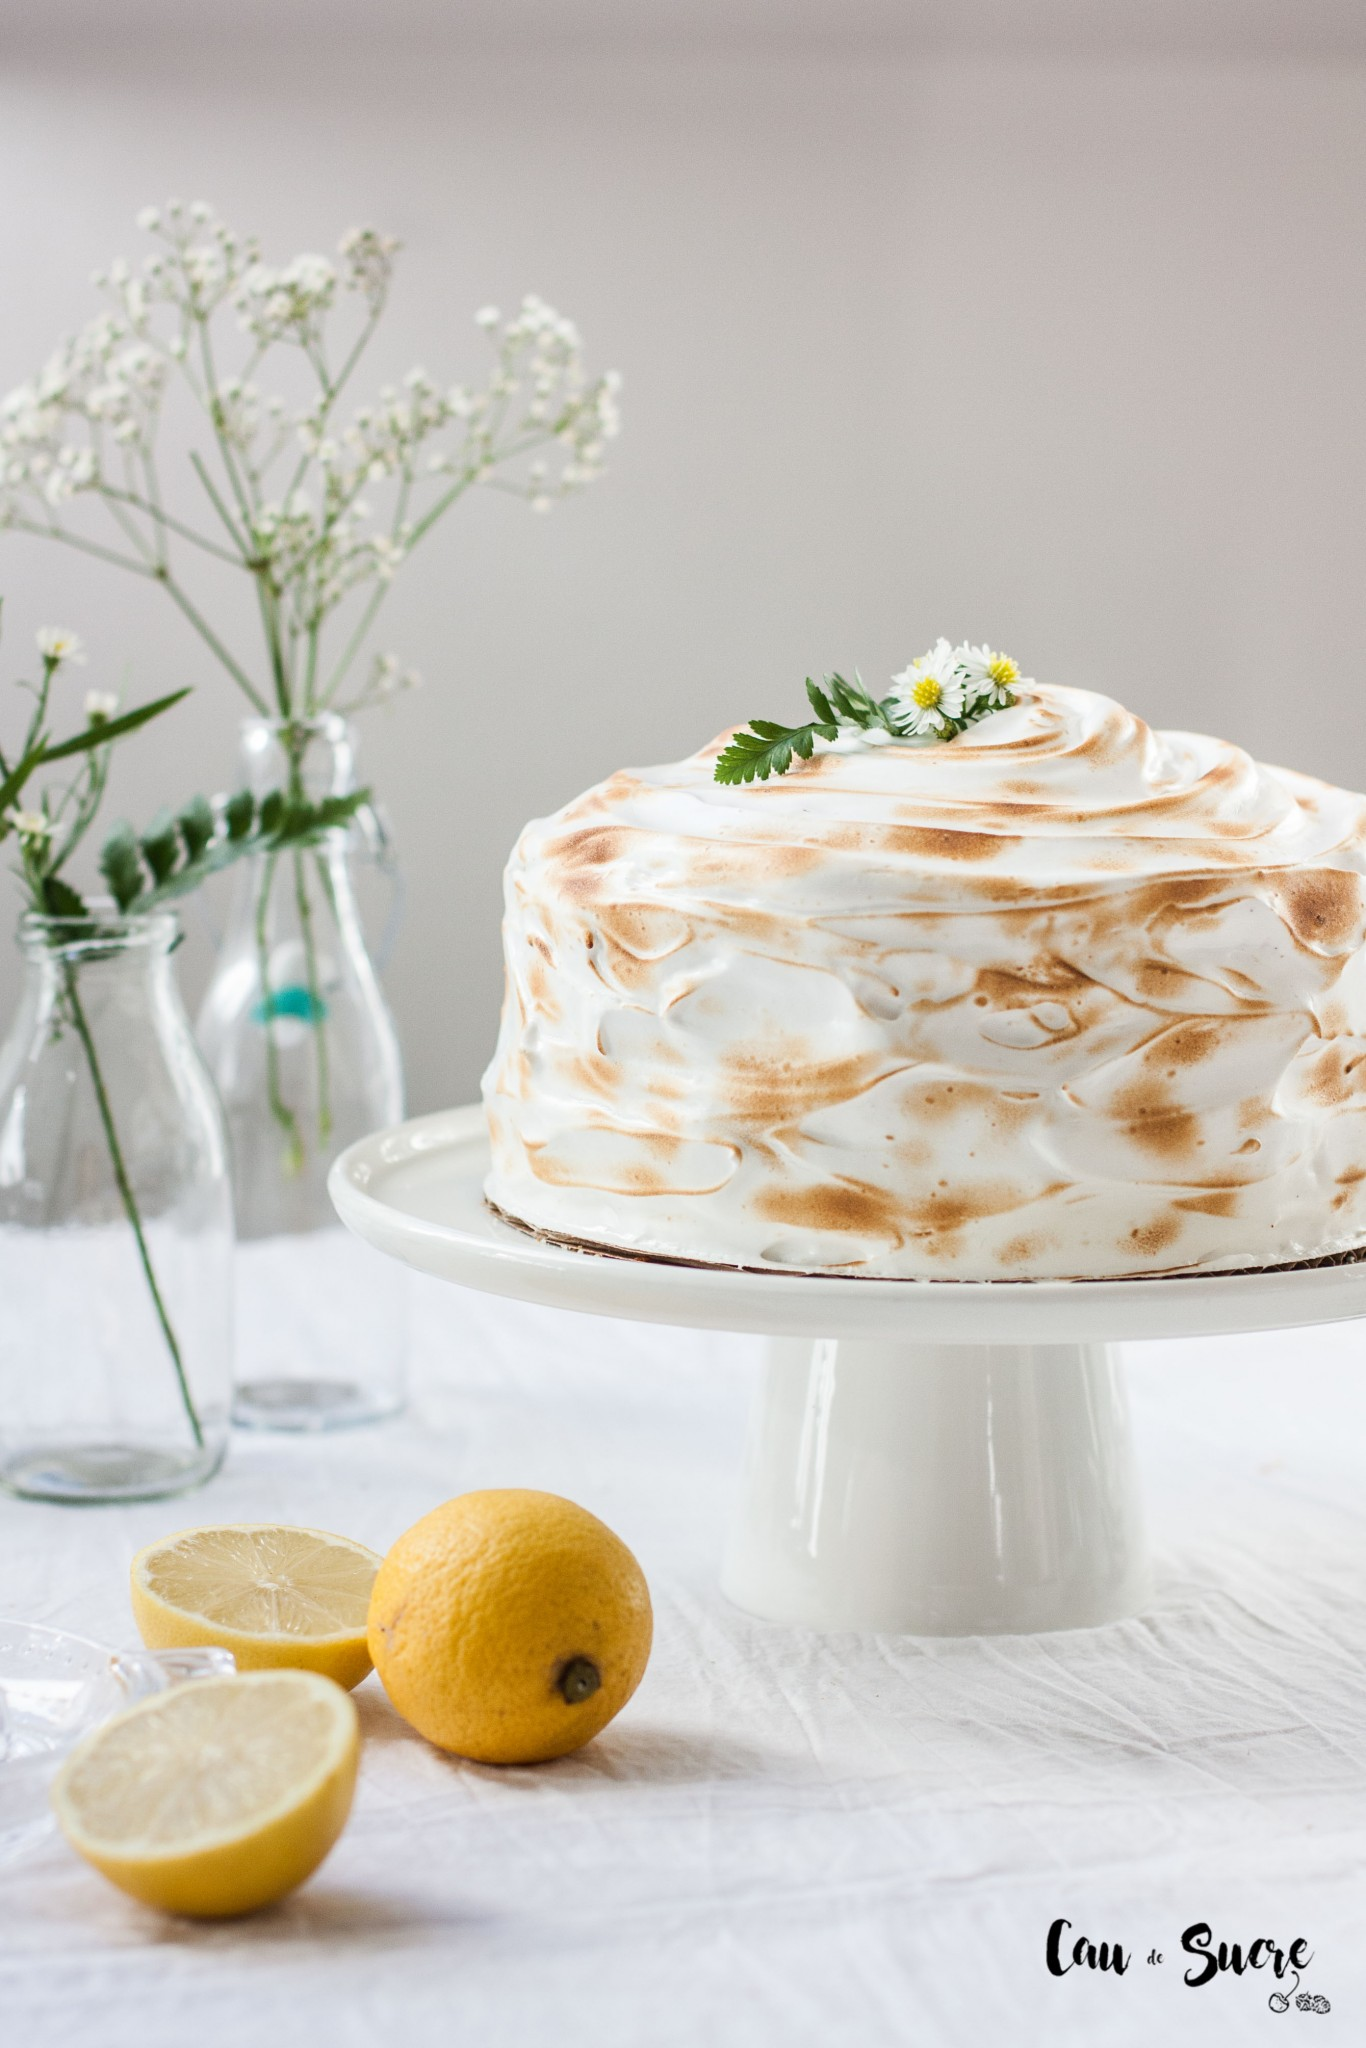 pastel-limon-merengue-7